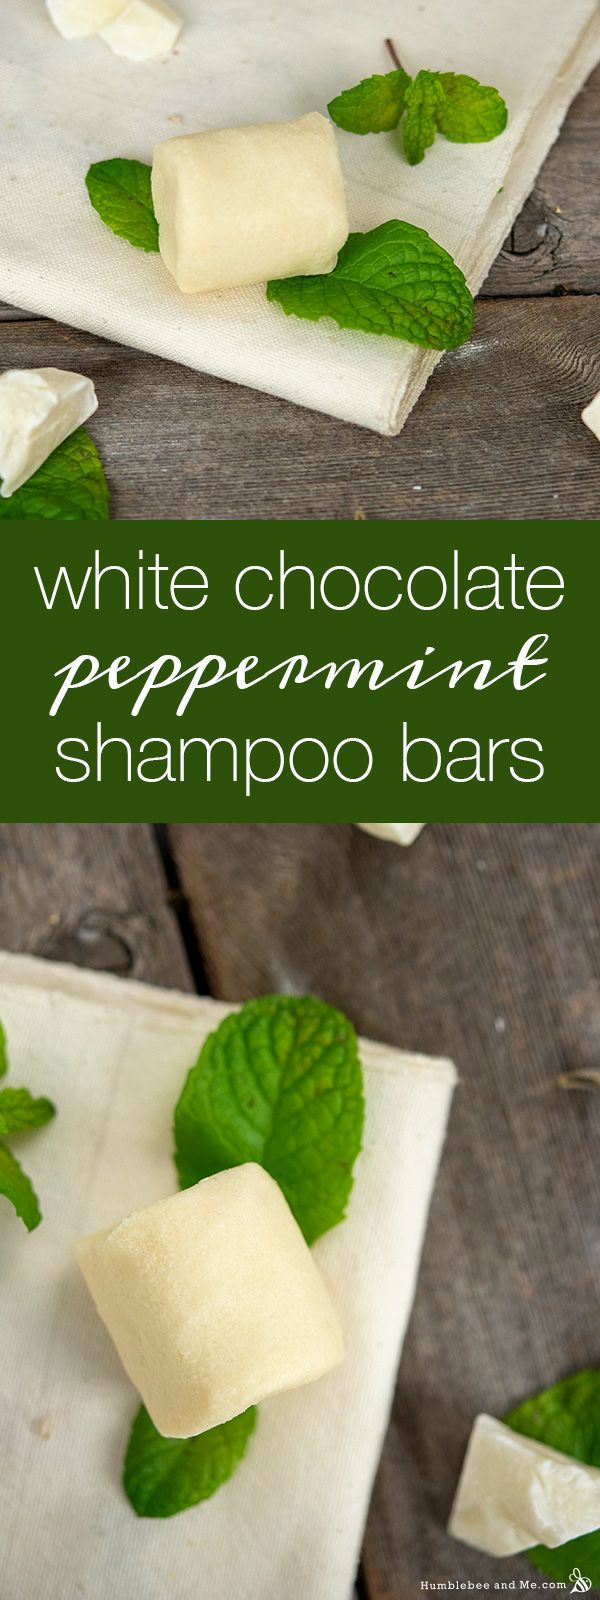 White Chocolate Peppermint Shampoo Bars #naturalhaircareproducts